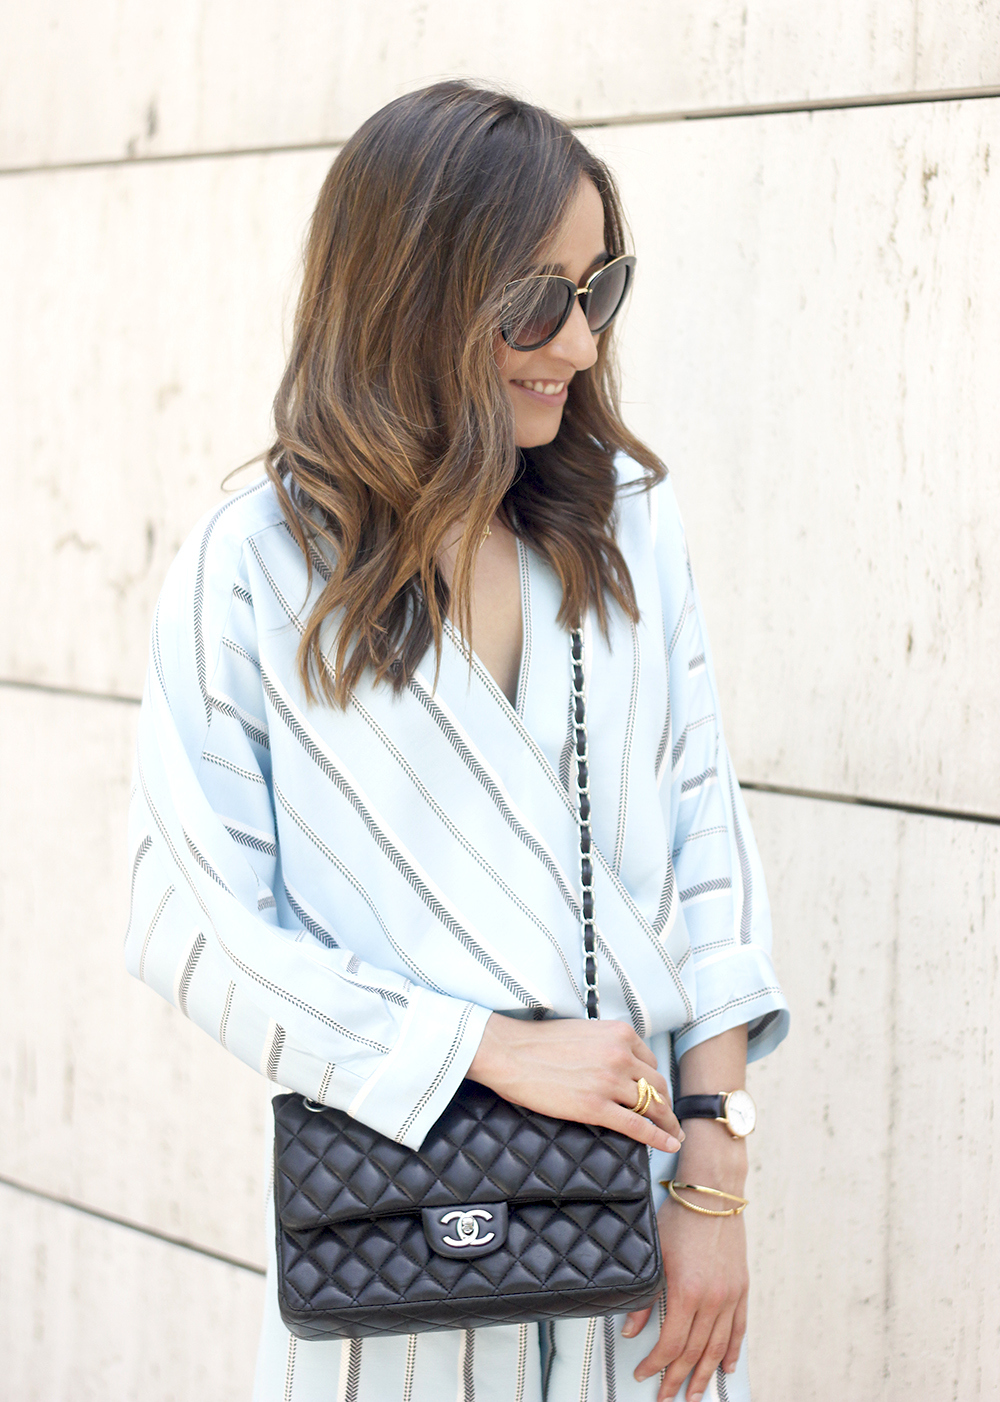 Maje Jumpsuit with stripes black heels chanel bag summer outfit street style fashion15